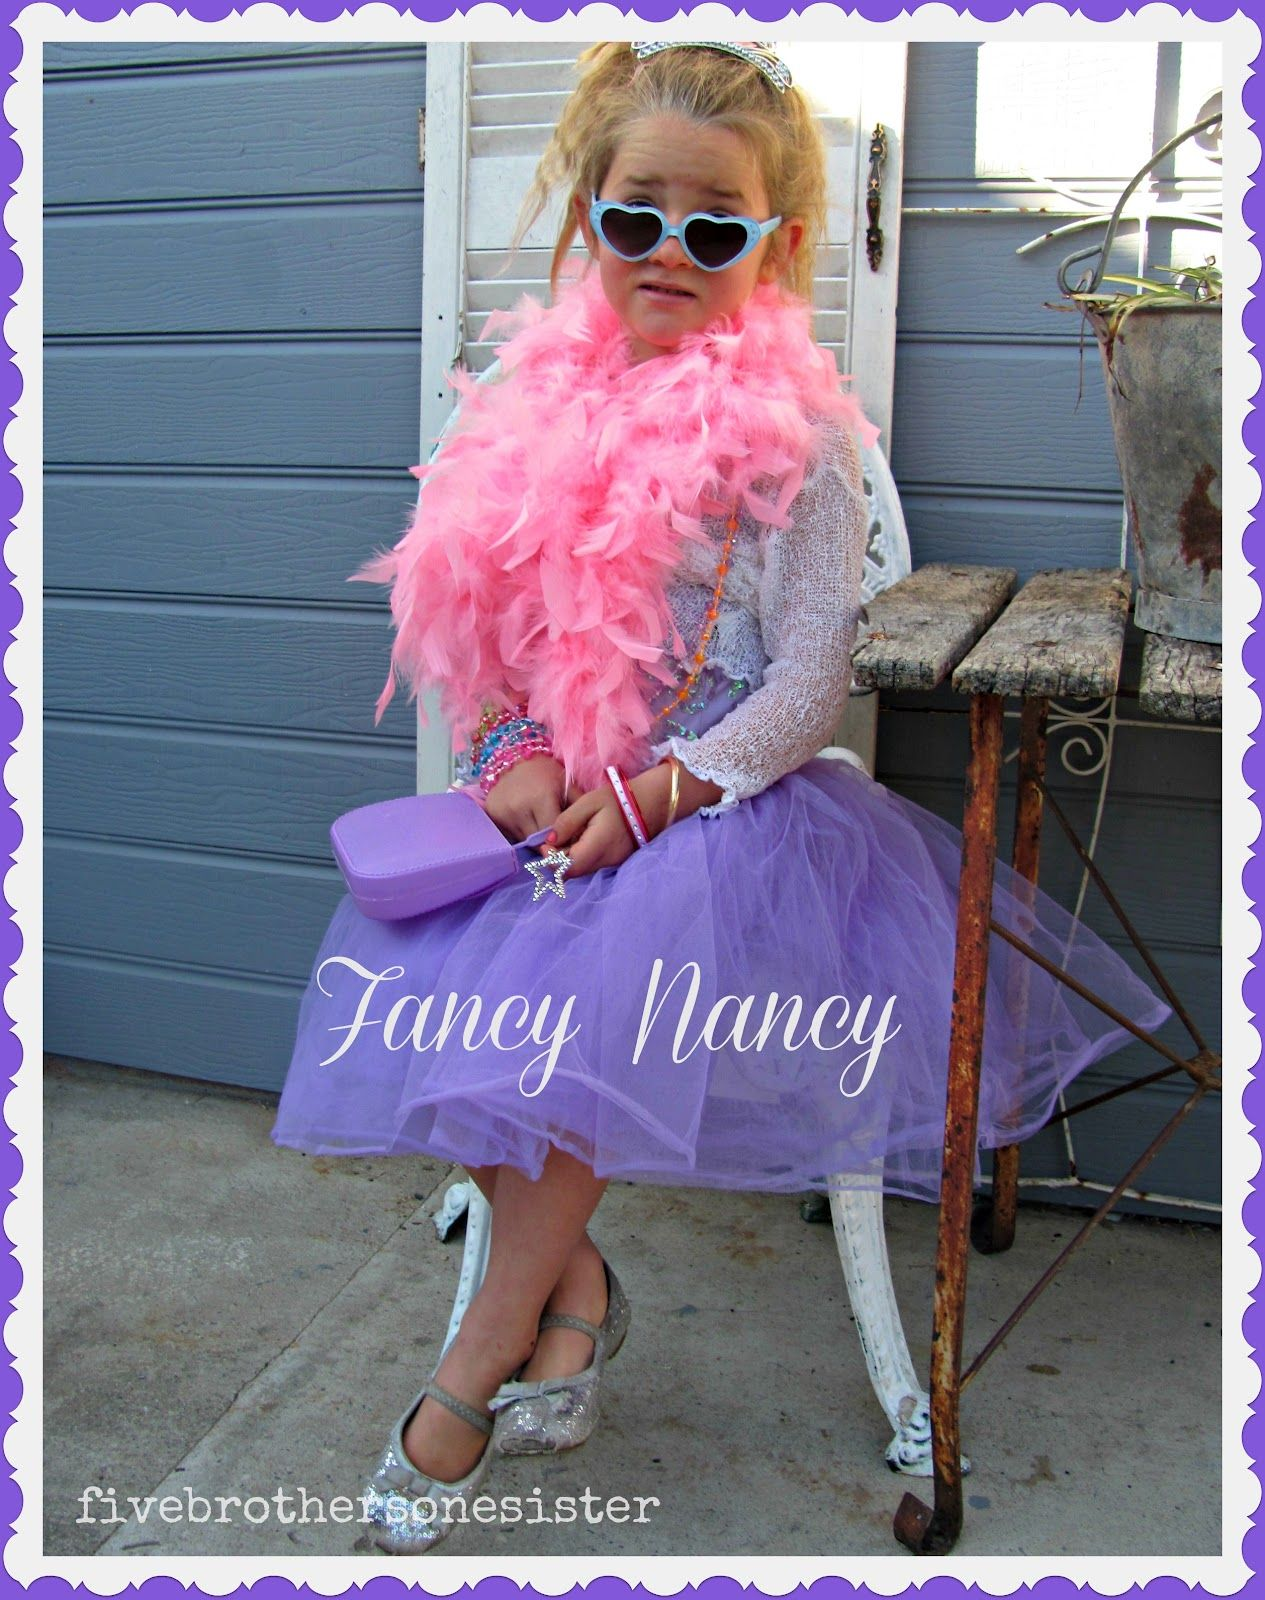 Fancy Nancy costume - five brothers one sister: book week characters #characterdayspiritweek